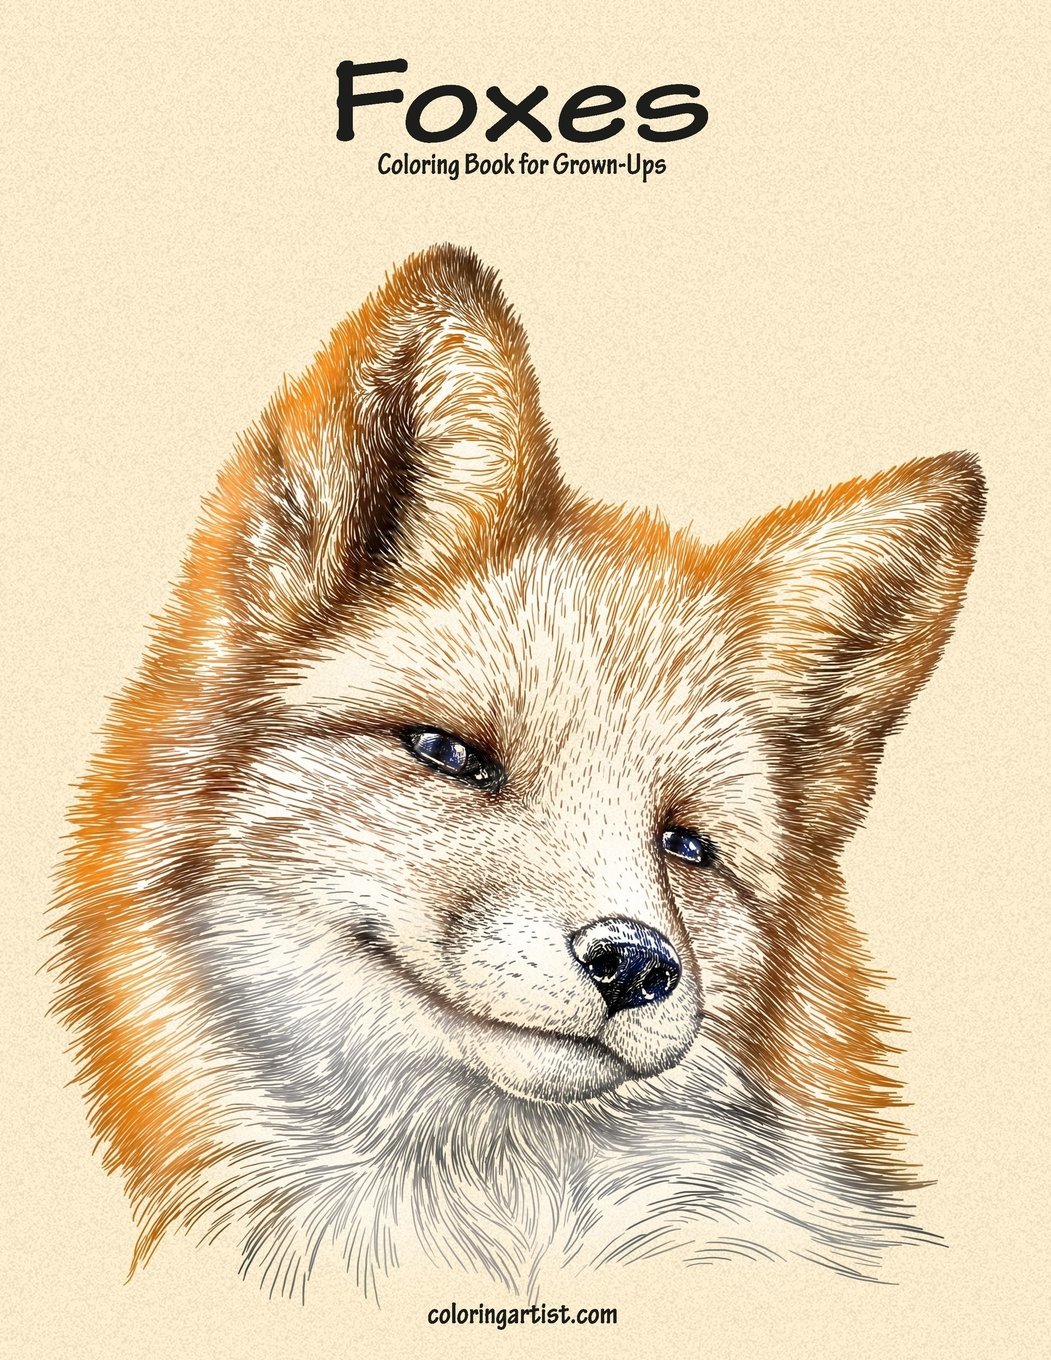 Download Foxes Coloring Book for Grown-Ups 1 (Volume 1) ebook